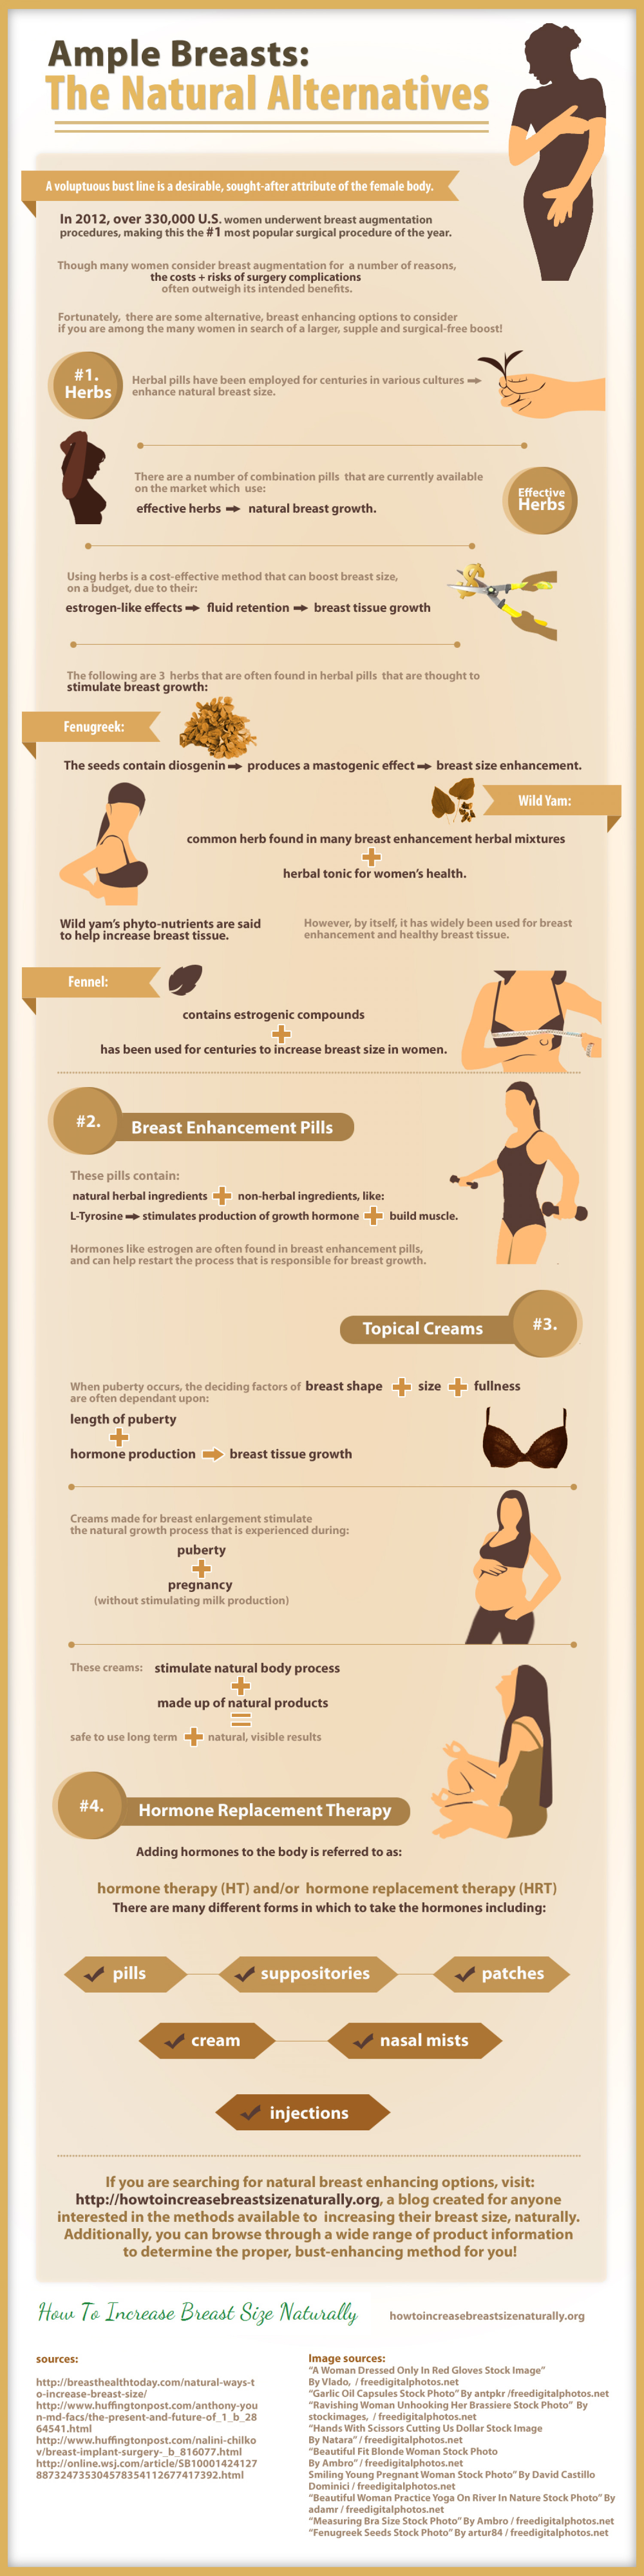 Ample Breasts:The Natural Alternatives Infographic